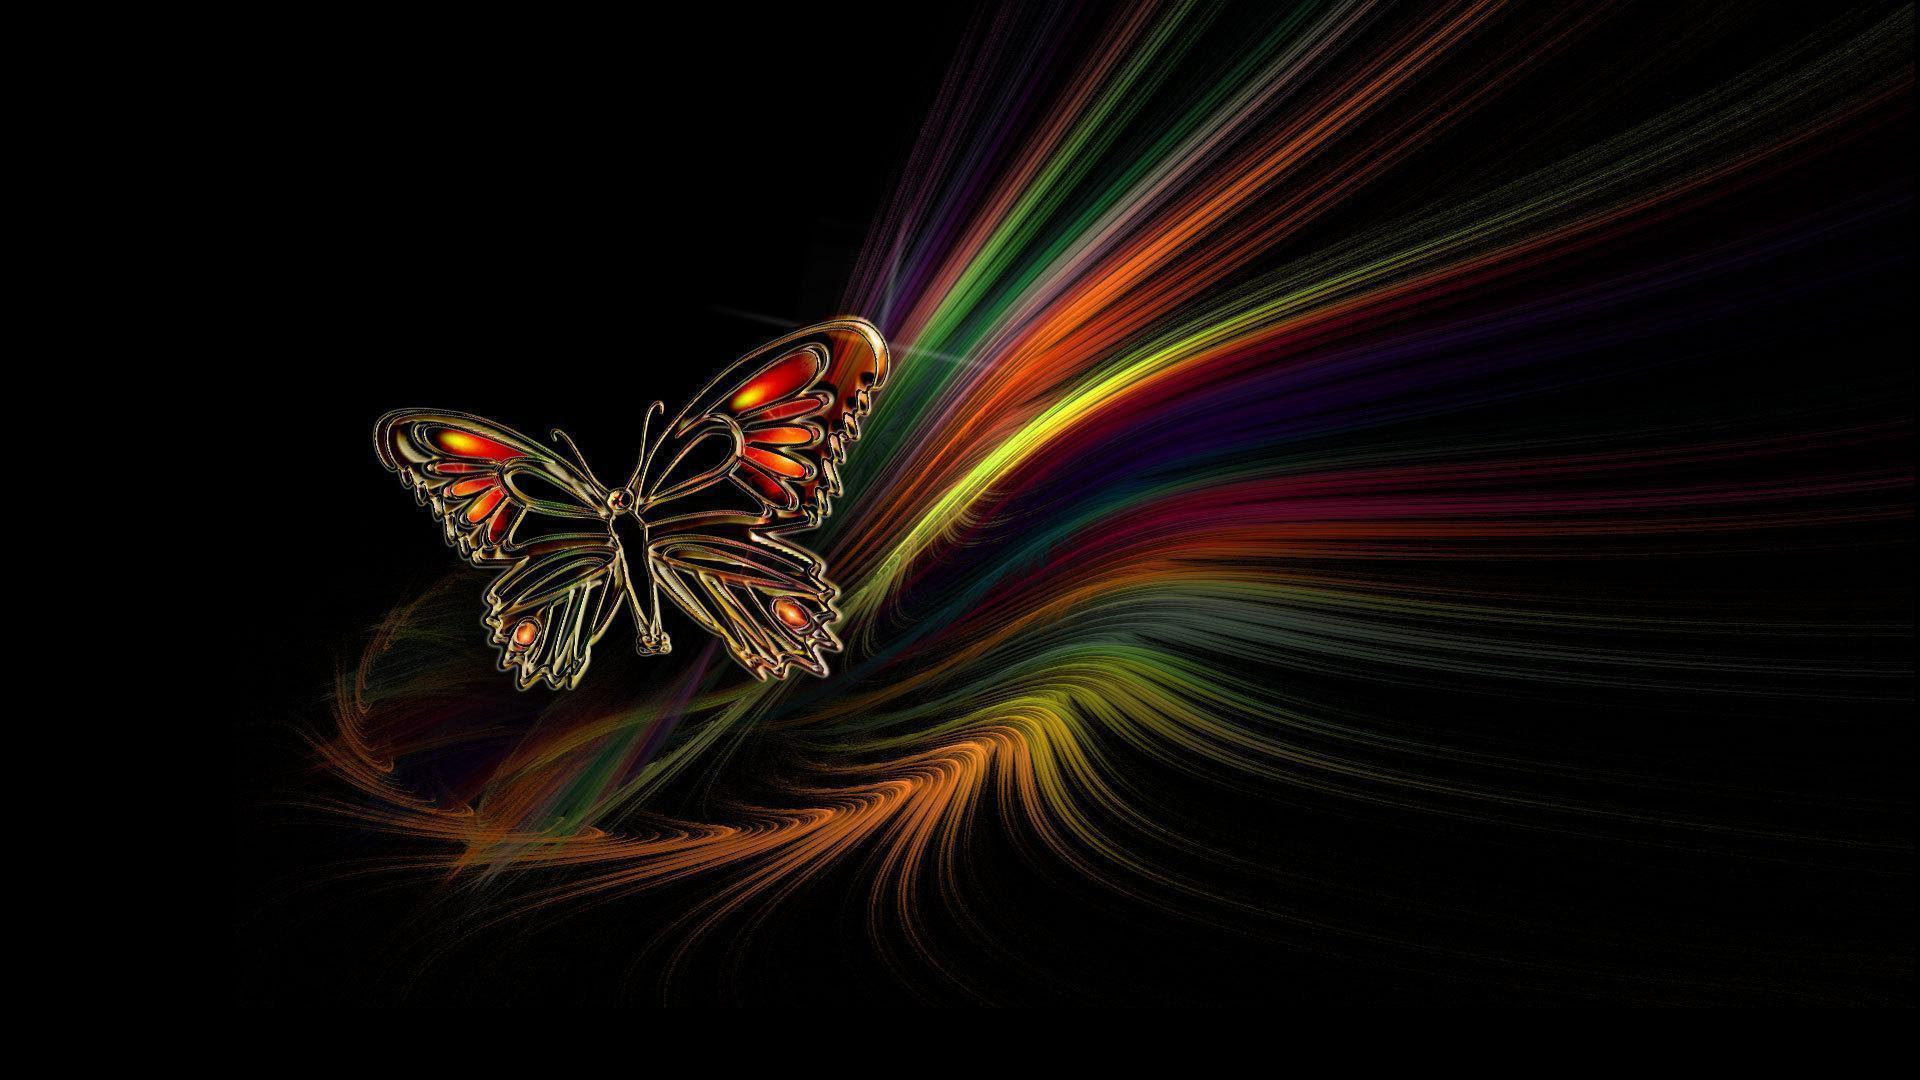 Butterfly Black Backgrounds - Wallpaper Cave